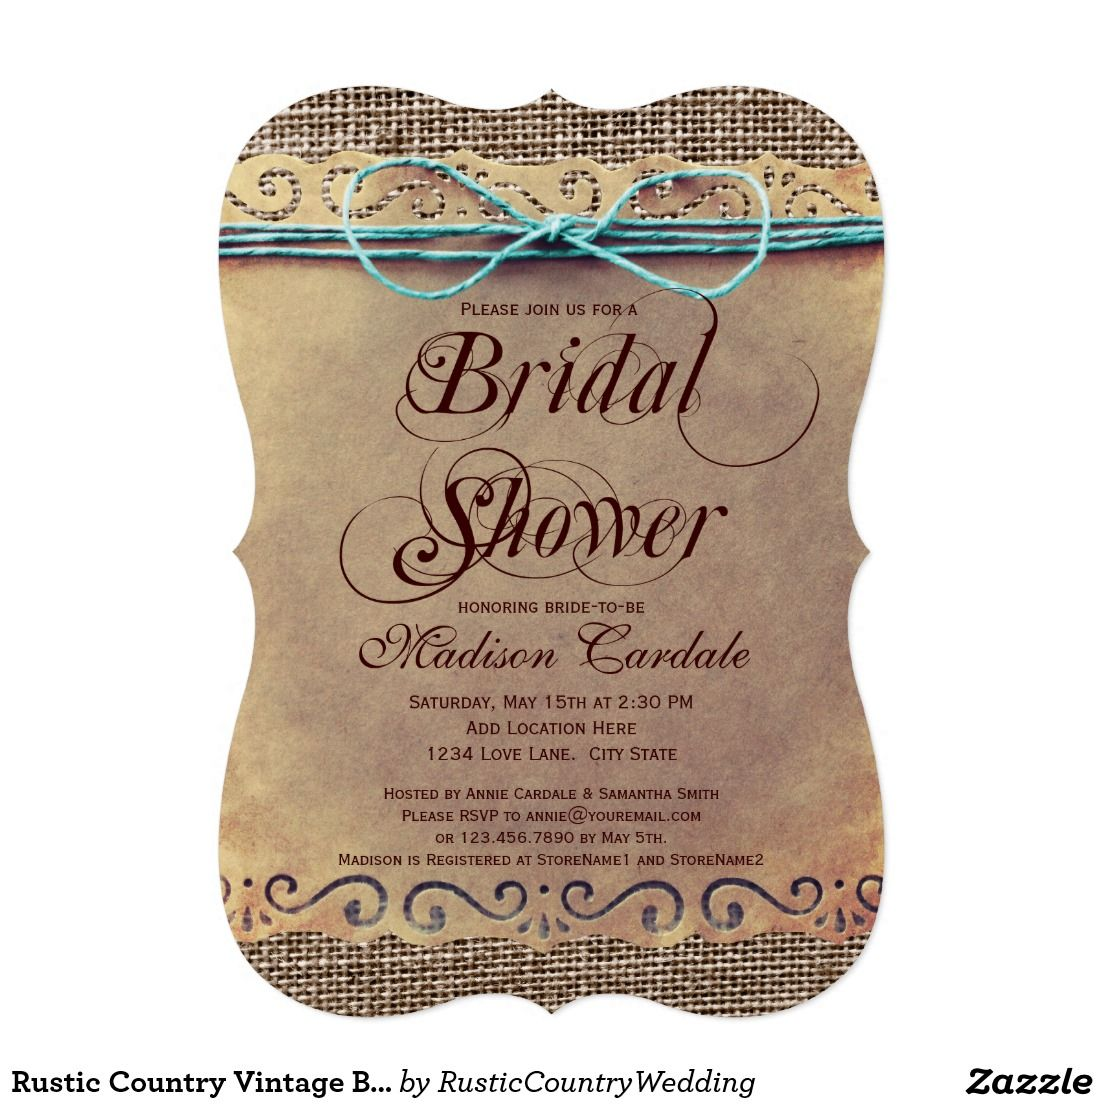 Rustic Country Vintage Bridal Shower Invitations 5\